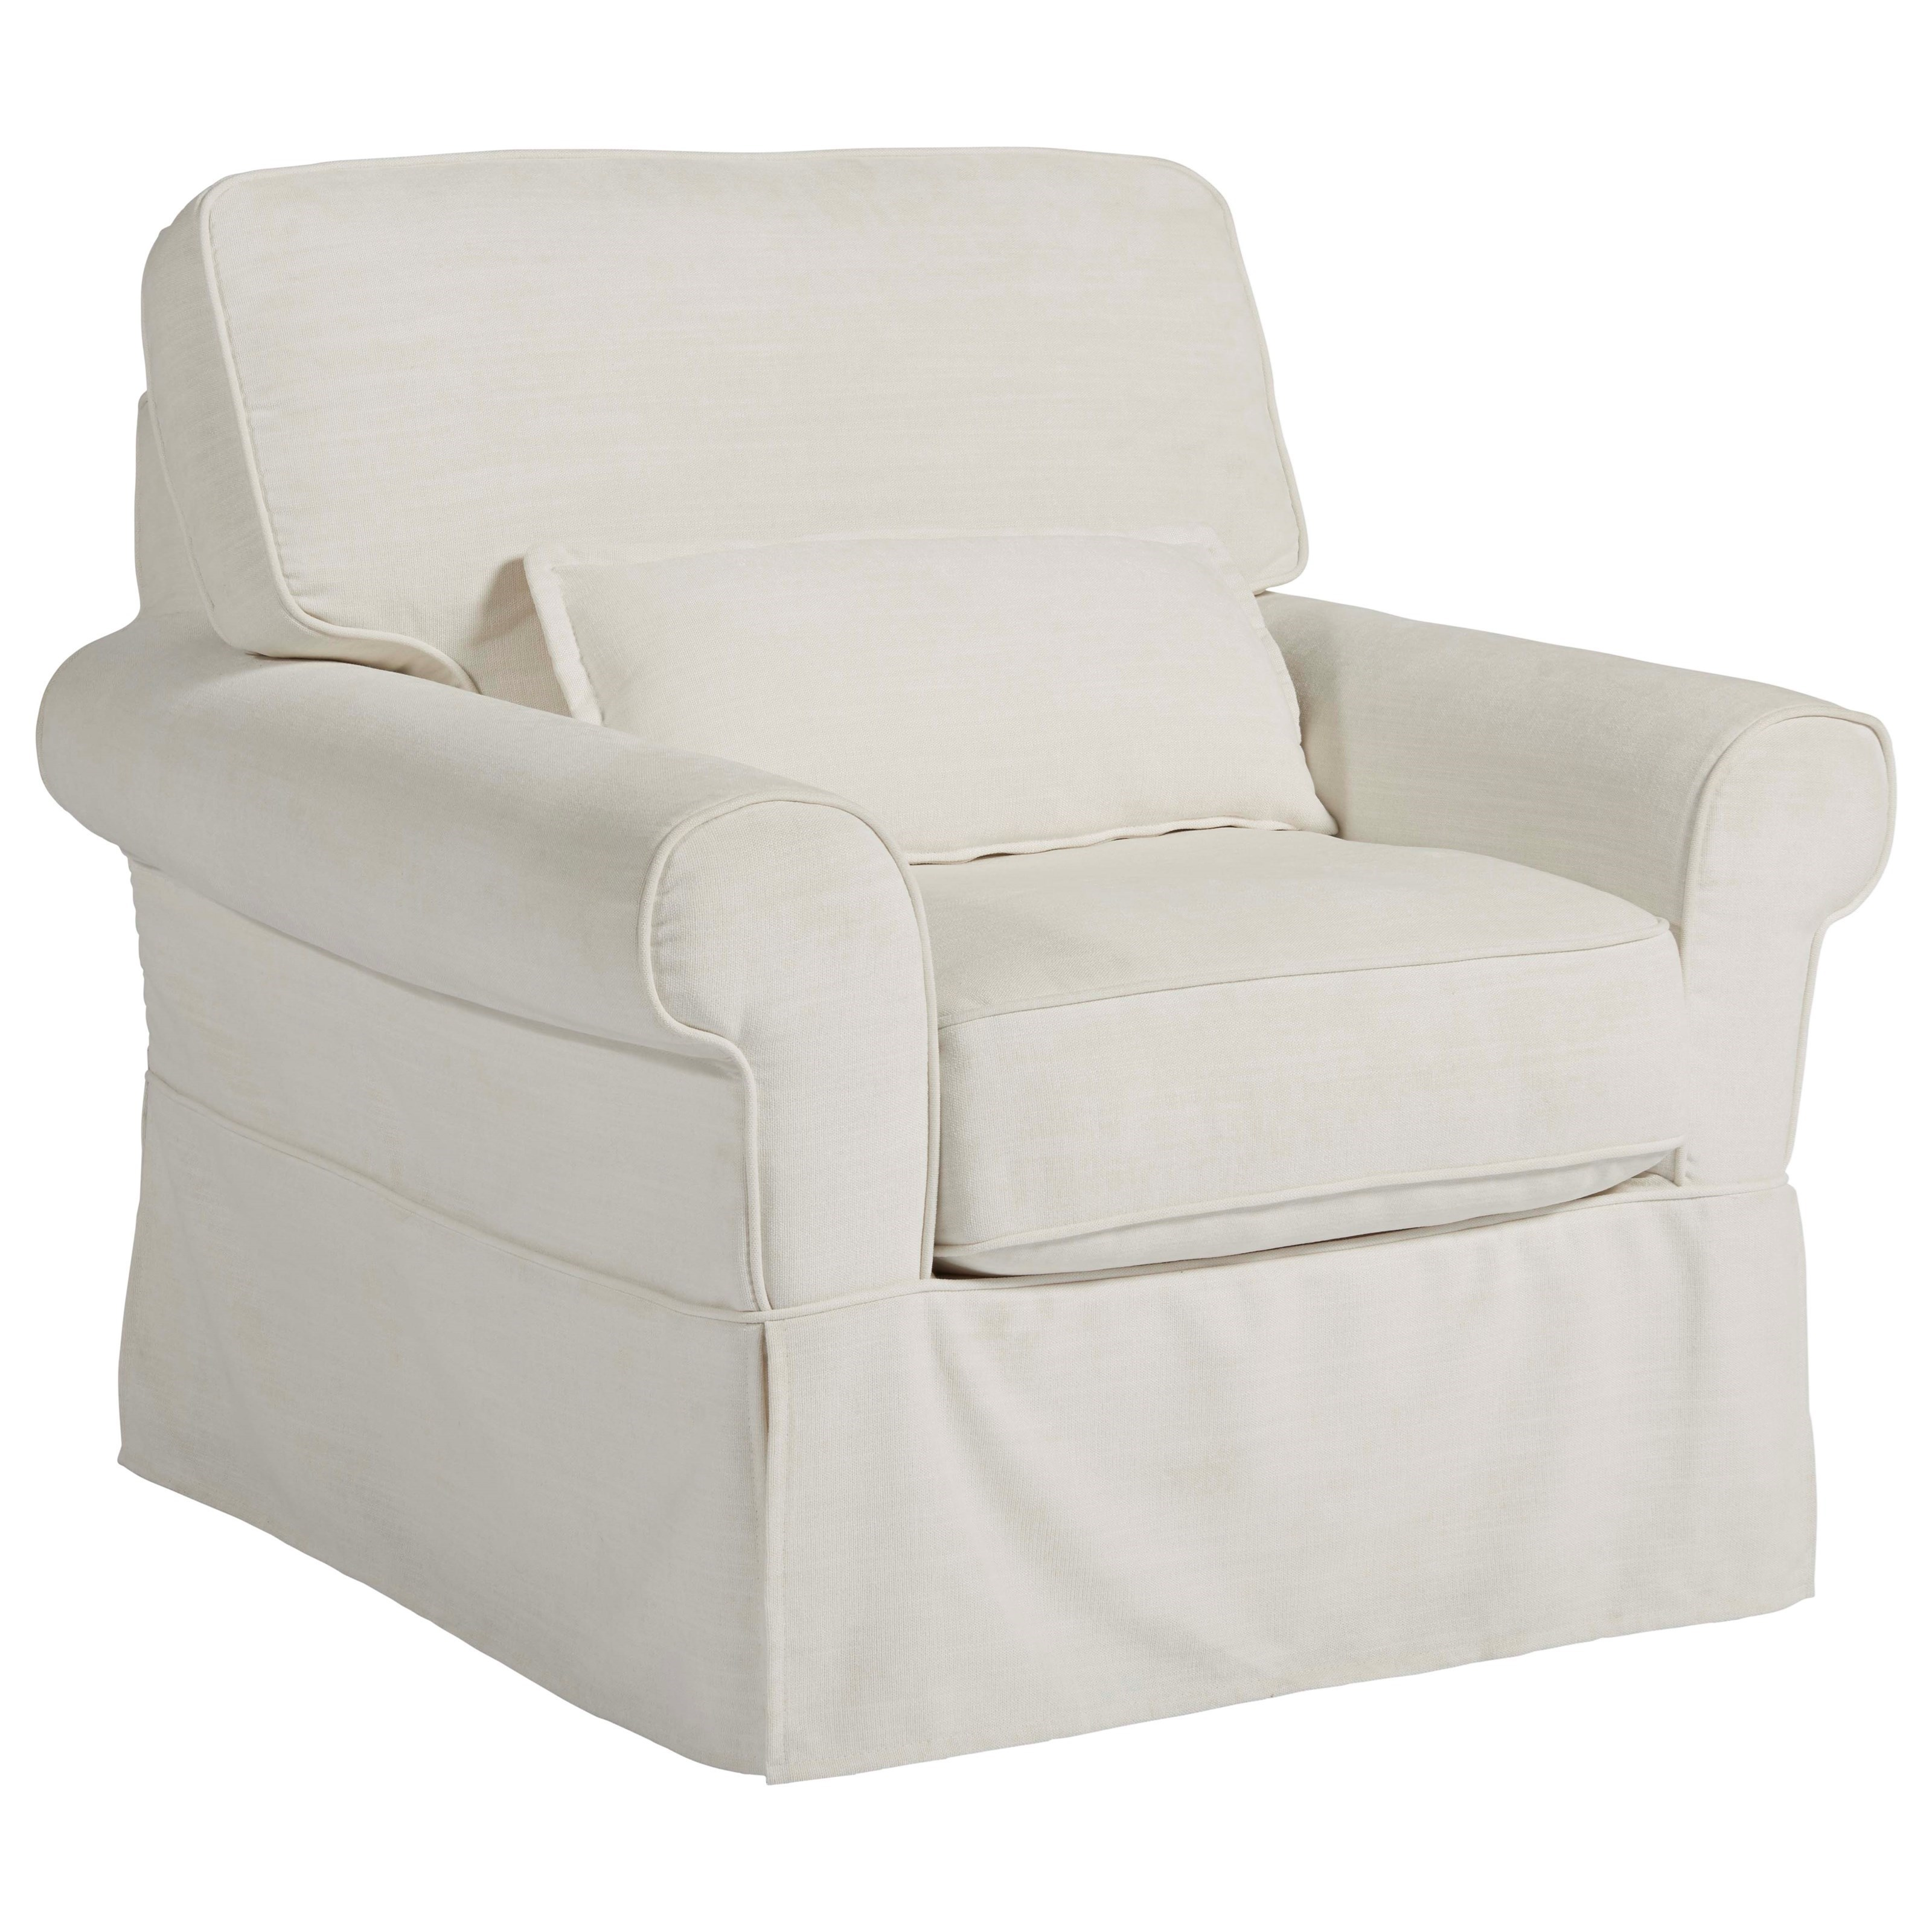 Ventura Chair with Rolled Arms